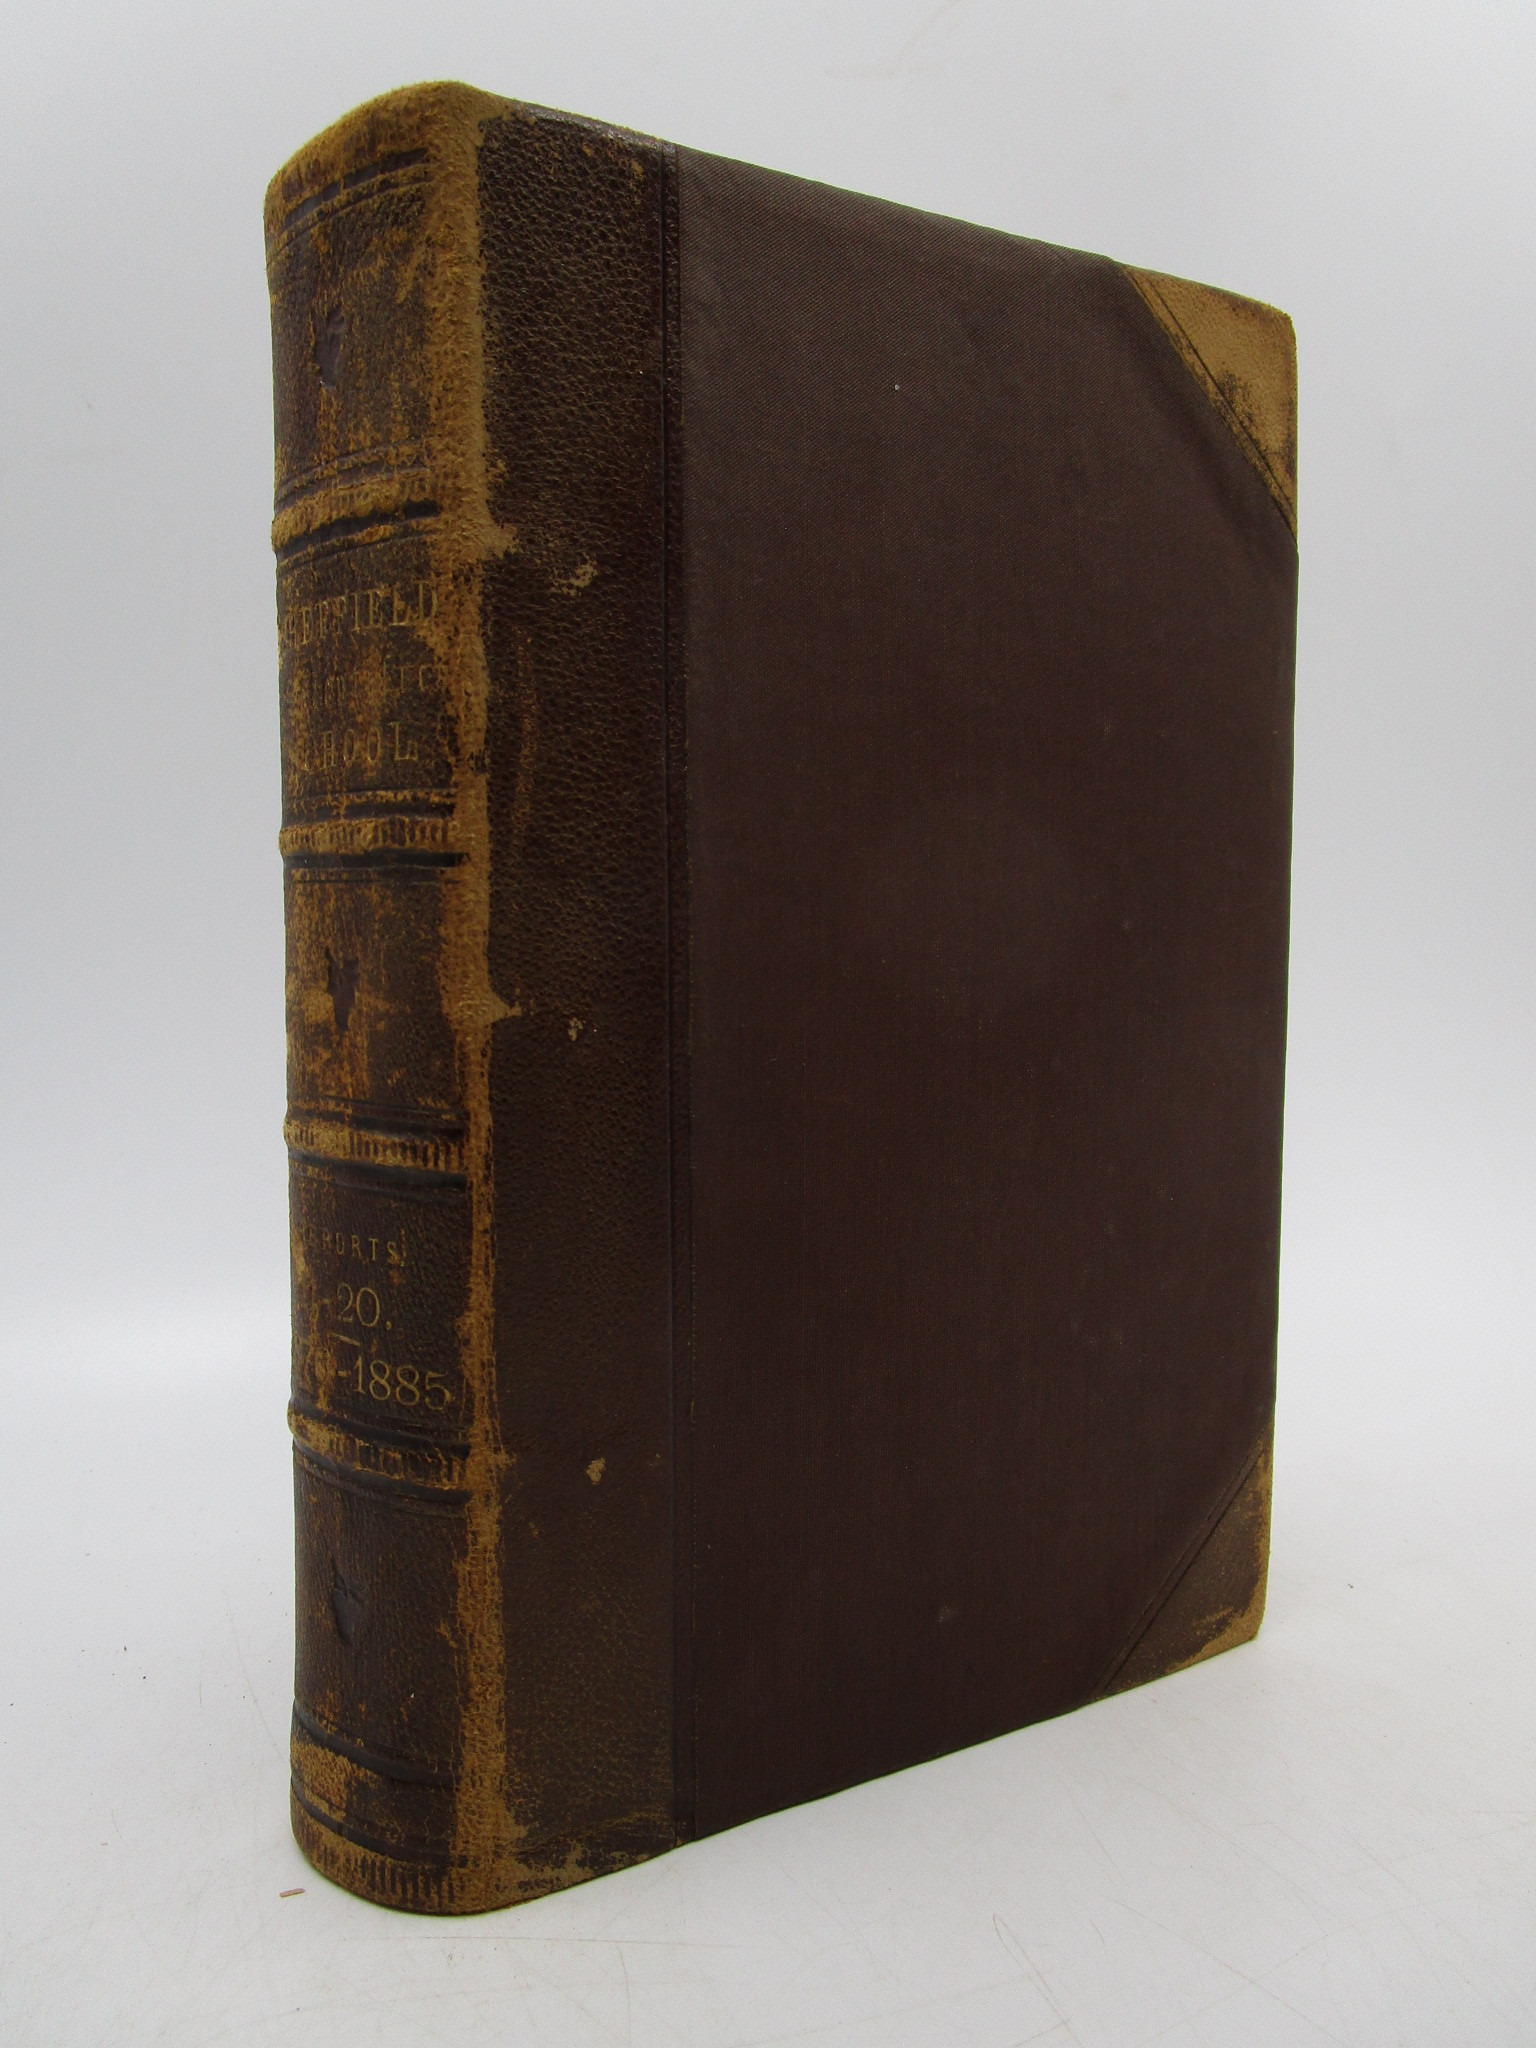 Image for Eleventh Annual Reports of the Sheffield Scientific School of Yale College 1875-76 (First Edition)